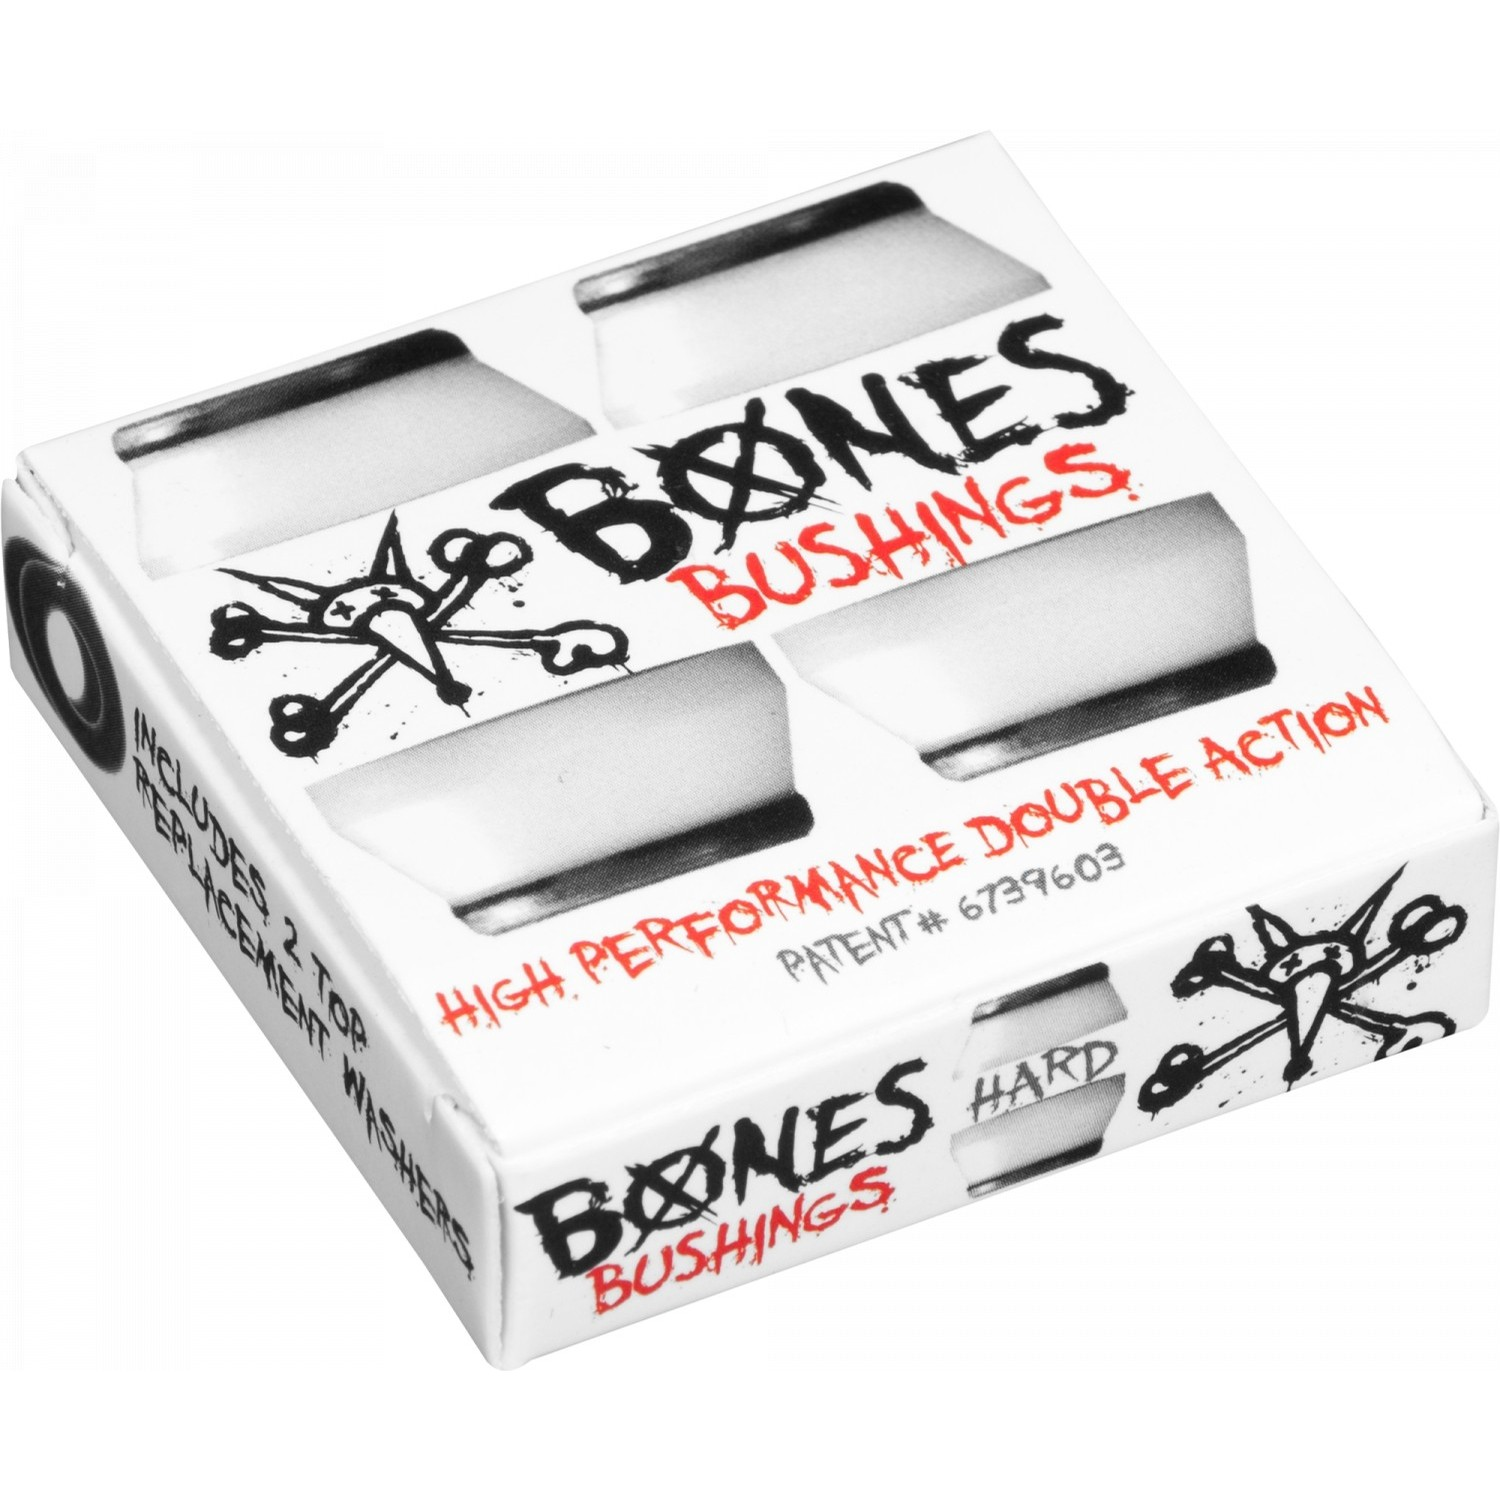 Bones Hard Hardcore Bushings